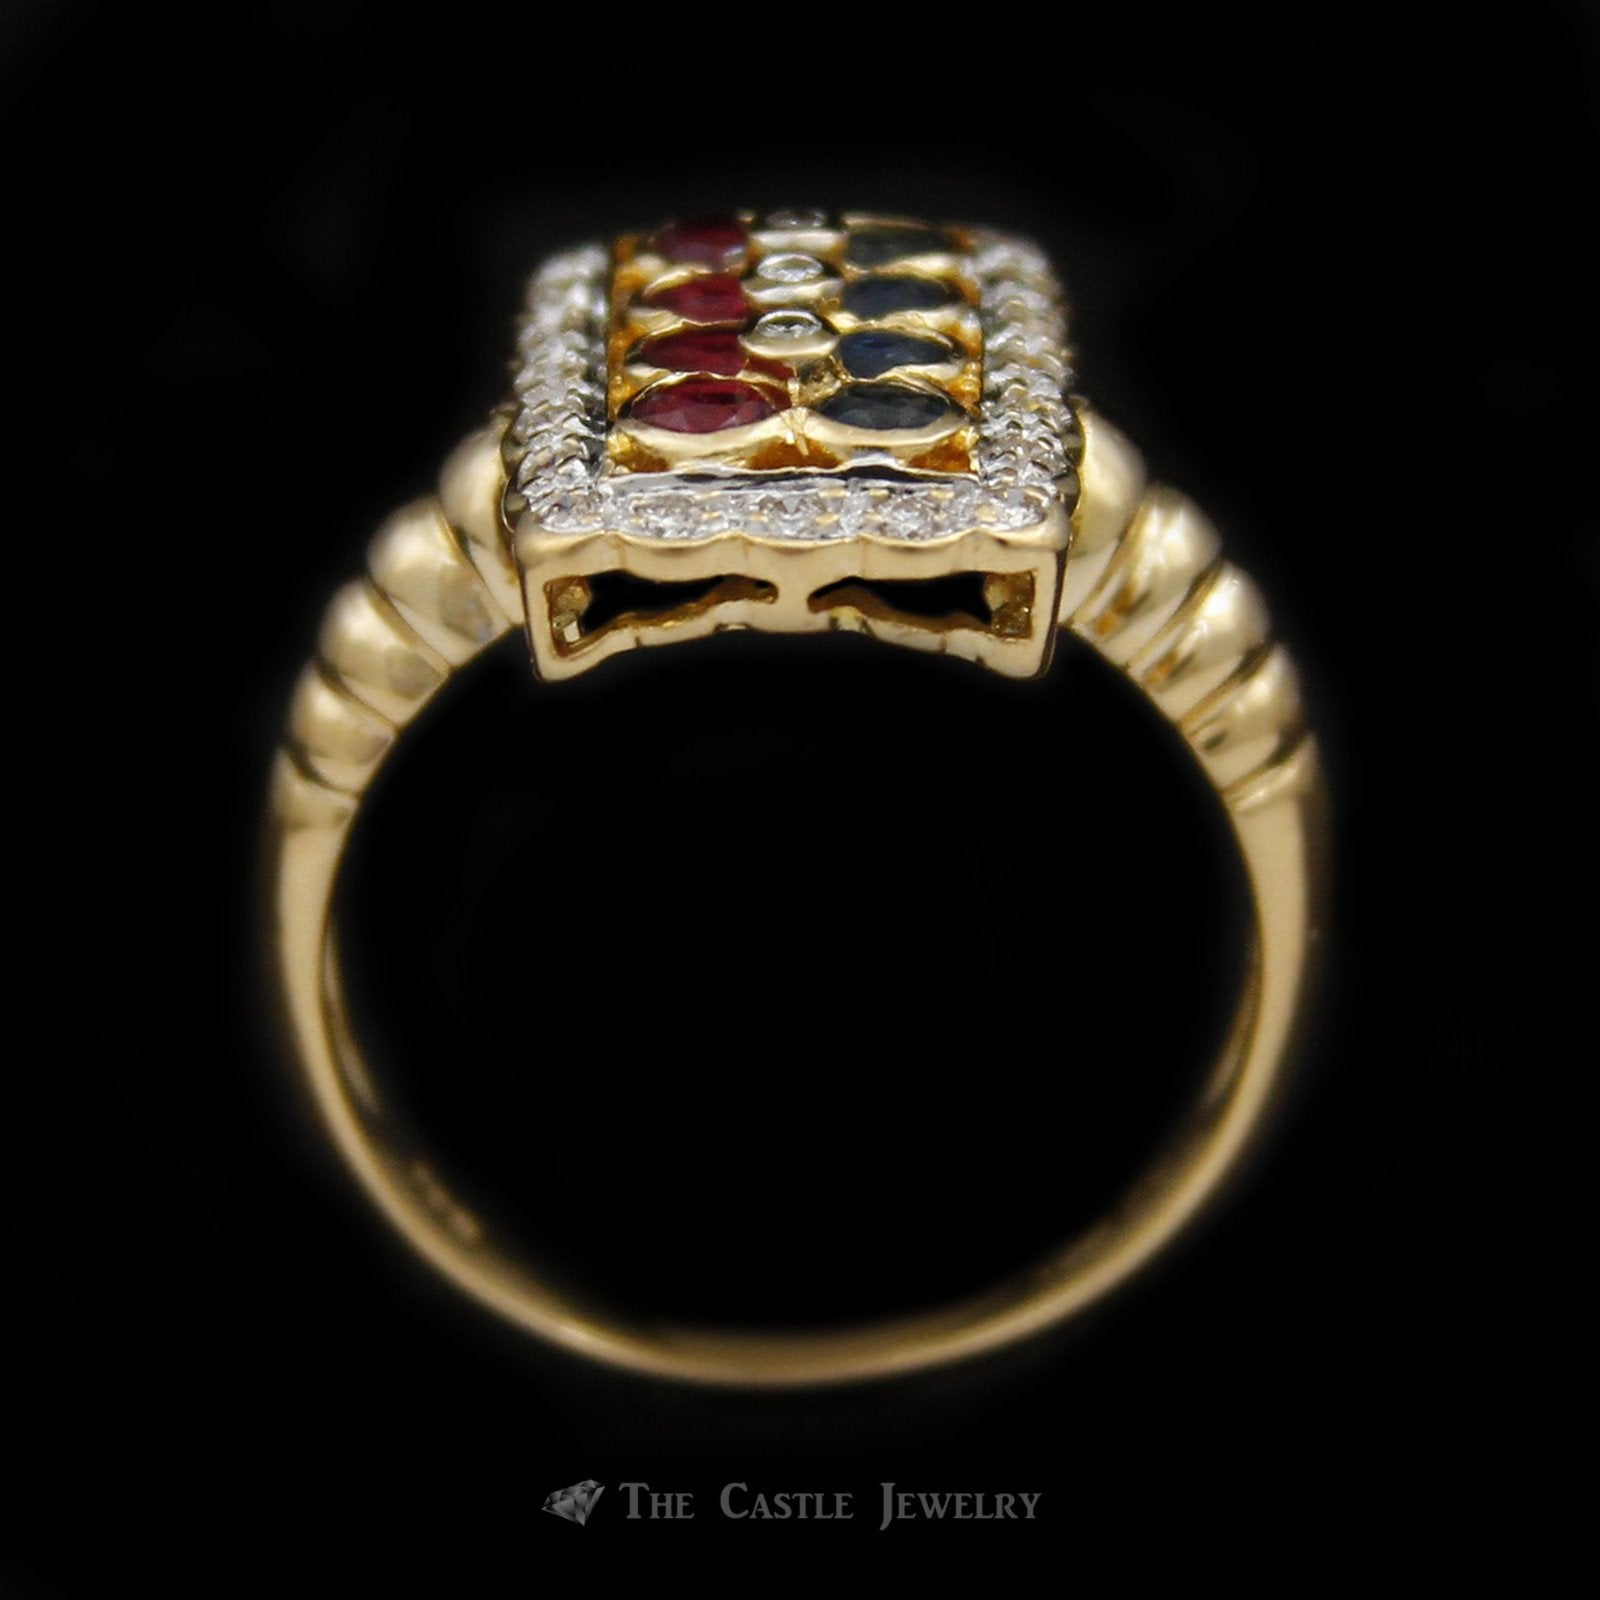 Rectangular Shaped Ruby & Sapphire Ring with Scalloped Design Diamond Bezel in 18K Yellow Gold-1